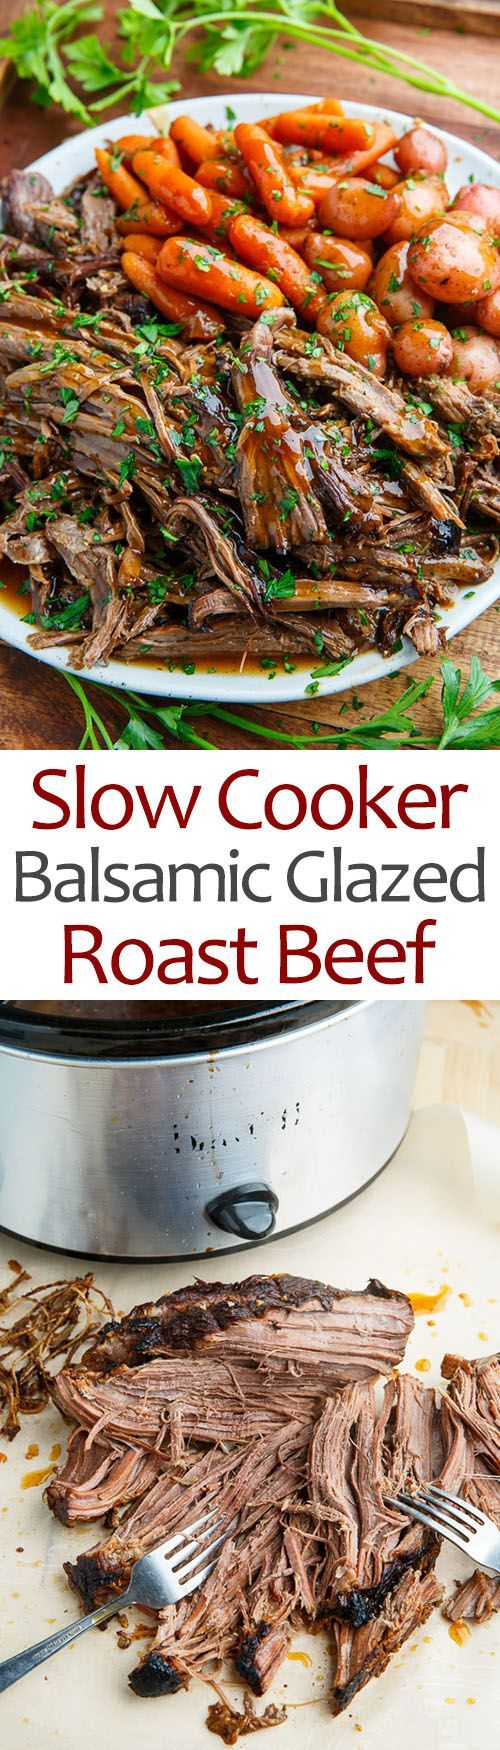 Roast Beef With Balsamic-Glazed Vegetables Recipe — Dishmaps